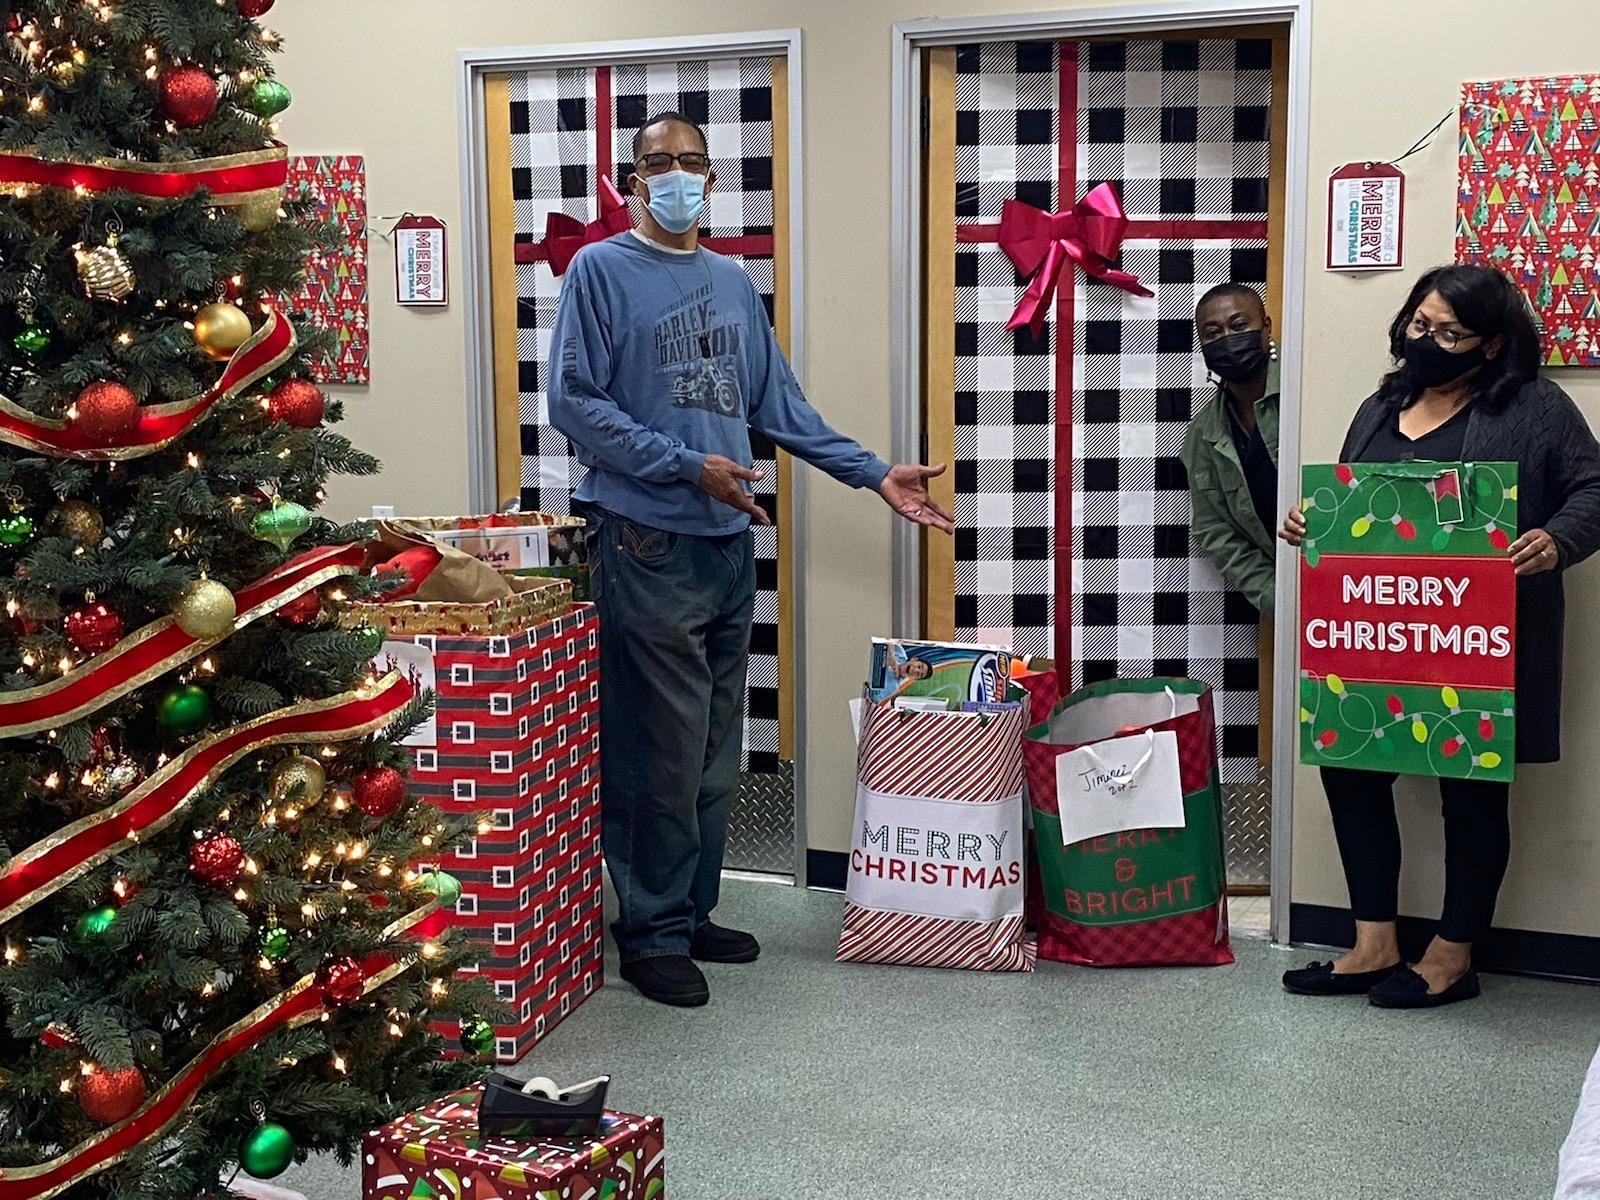 Three staff wear masks with holiday gifts, Christmas tree.